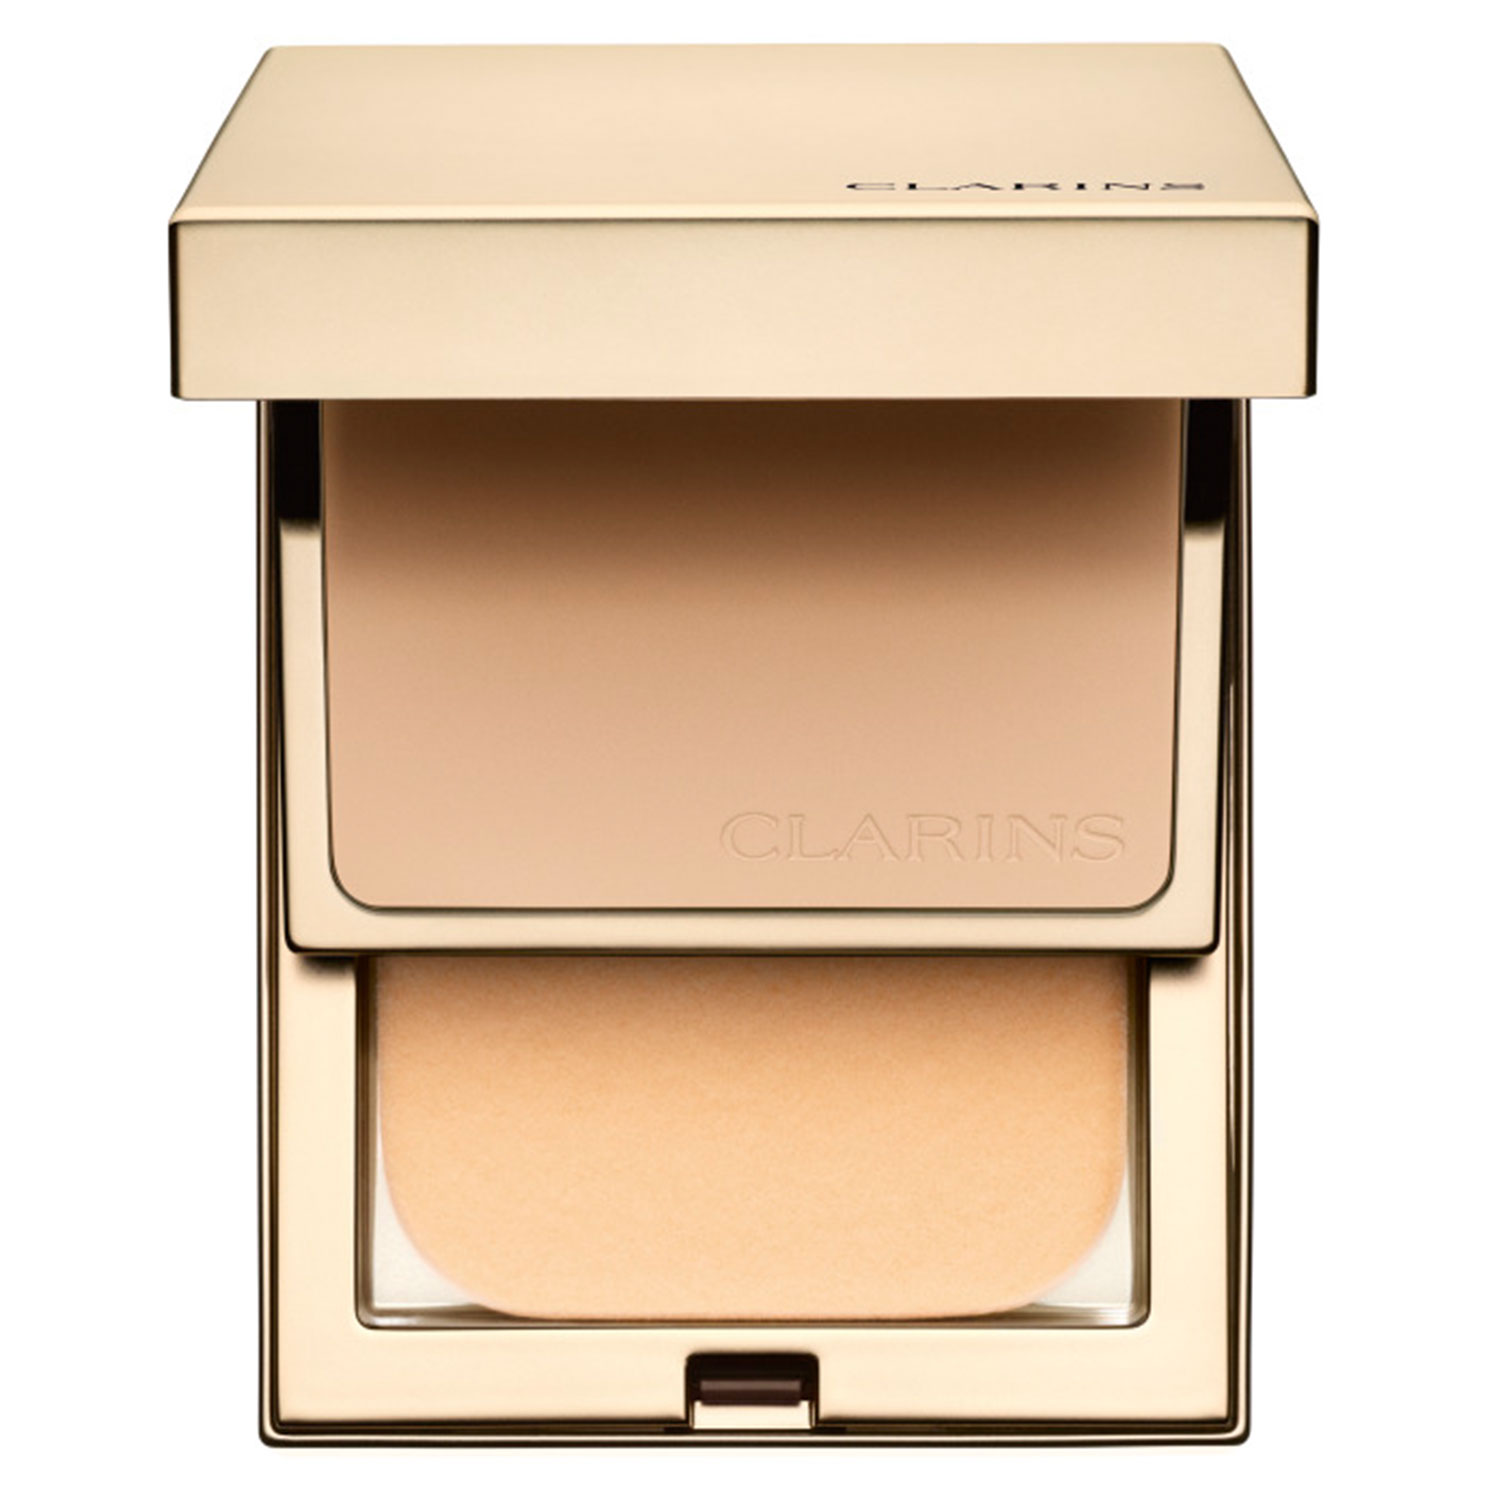 Teint Haute Tenue+ - Everlasting Compact Honey 110